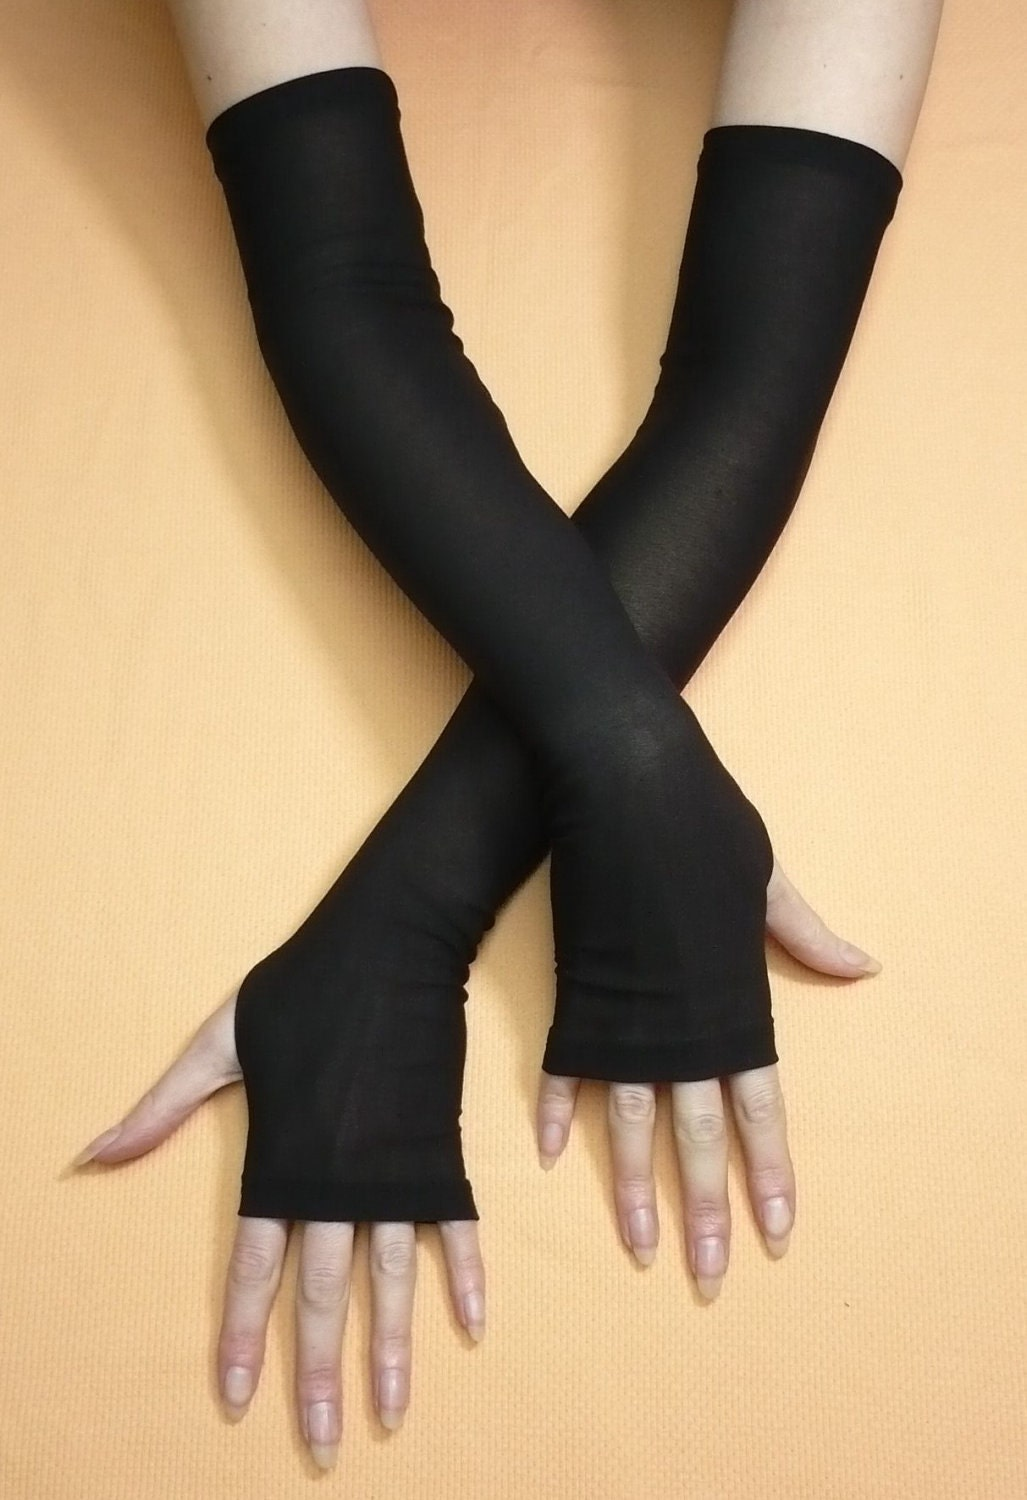 Out totally 80's inspired gloves are perfect for any costume style. Our Fishnet Fingerless Gloves make a great